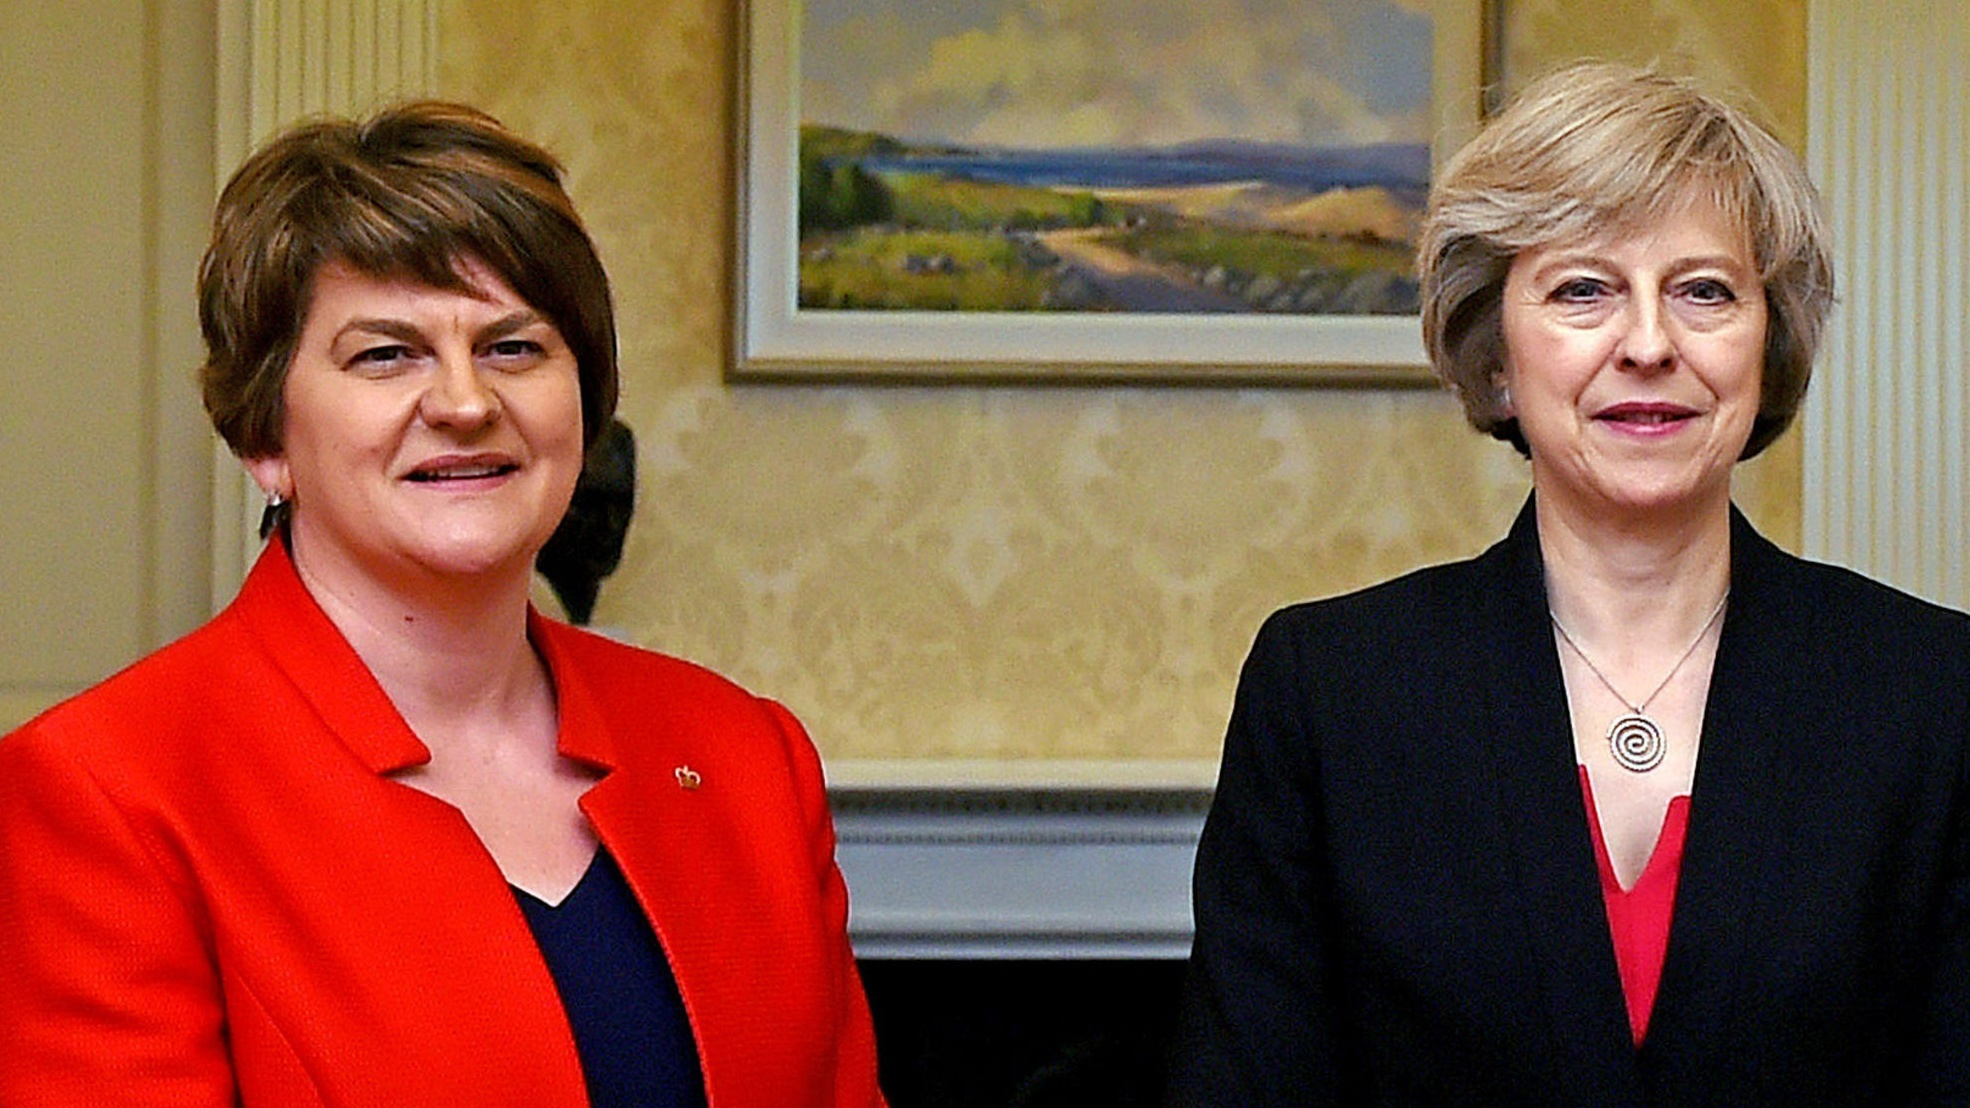 Cabinet briefed on plans for Government deal with DUP